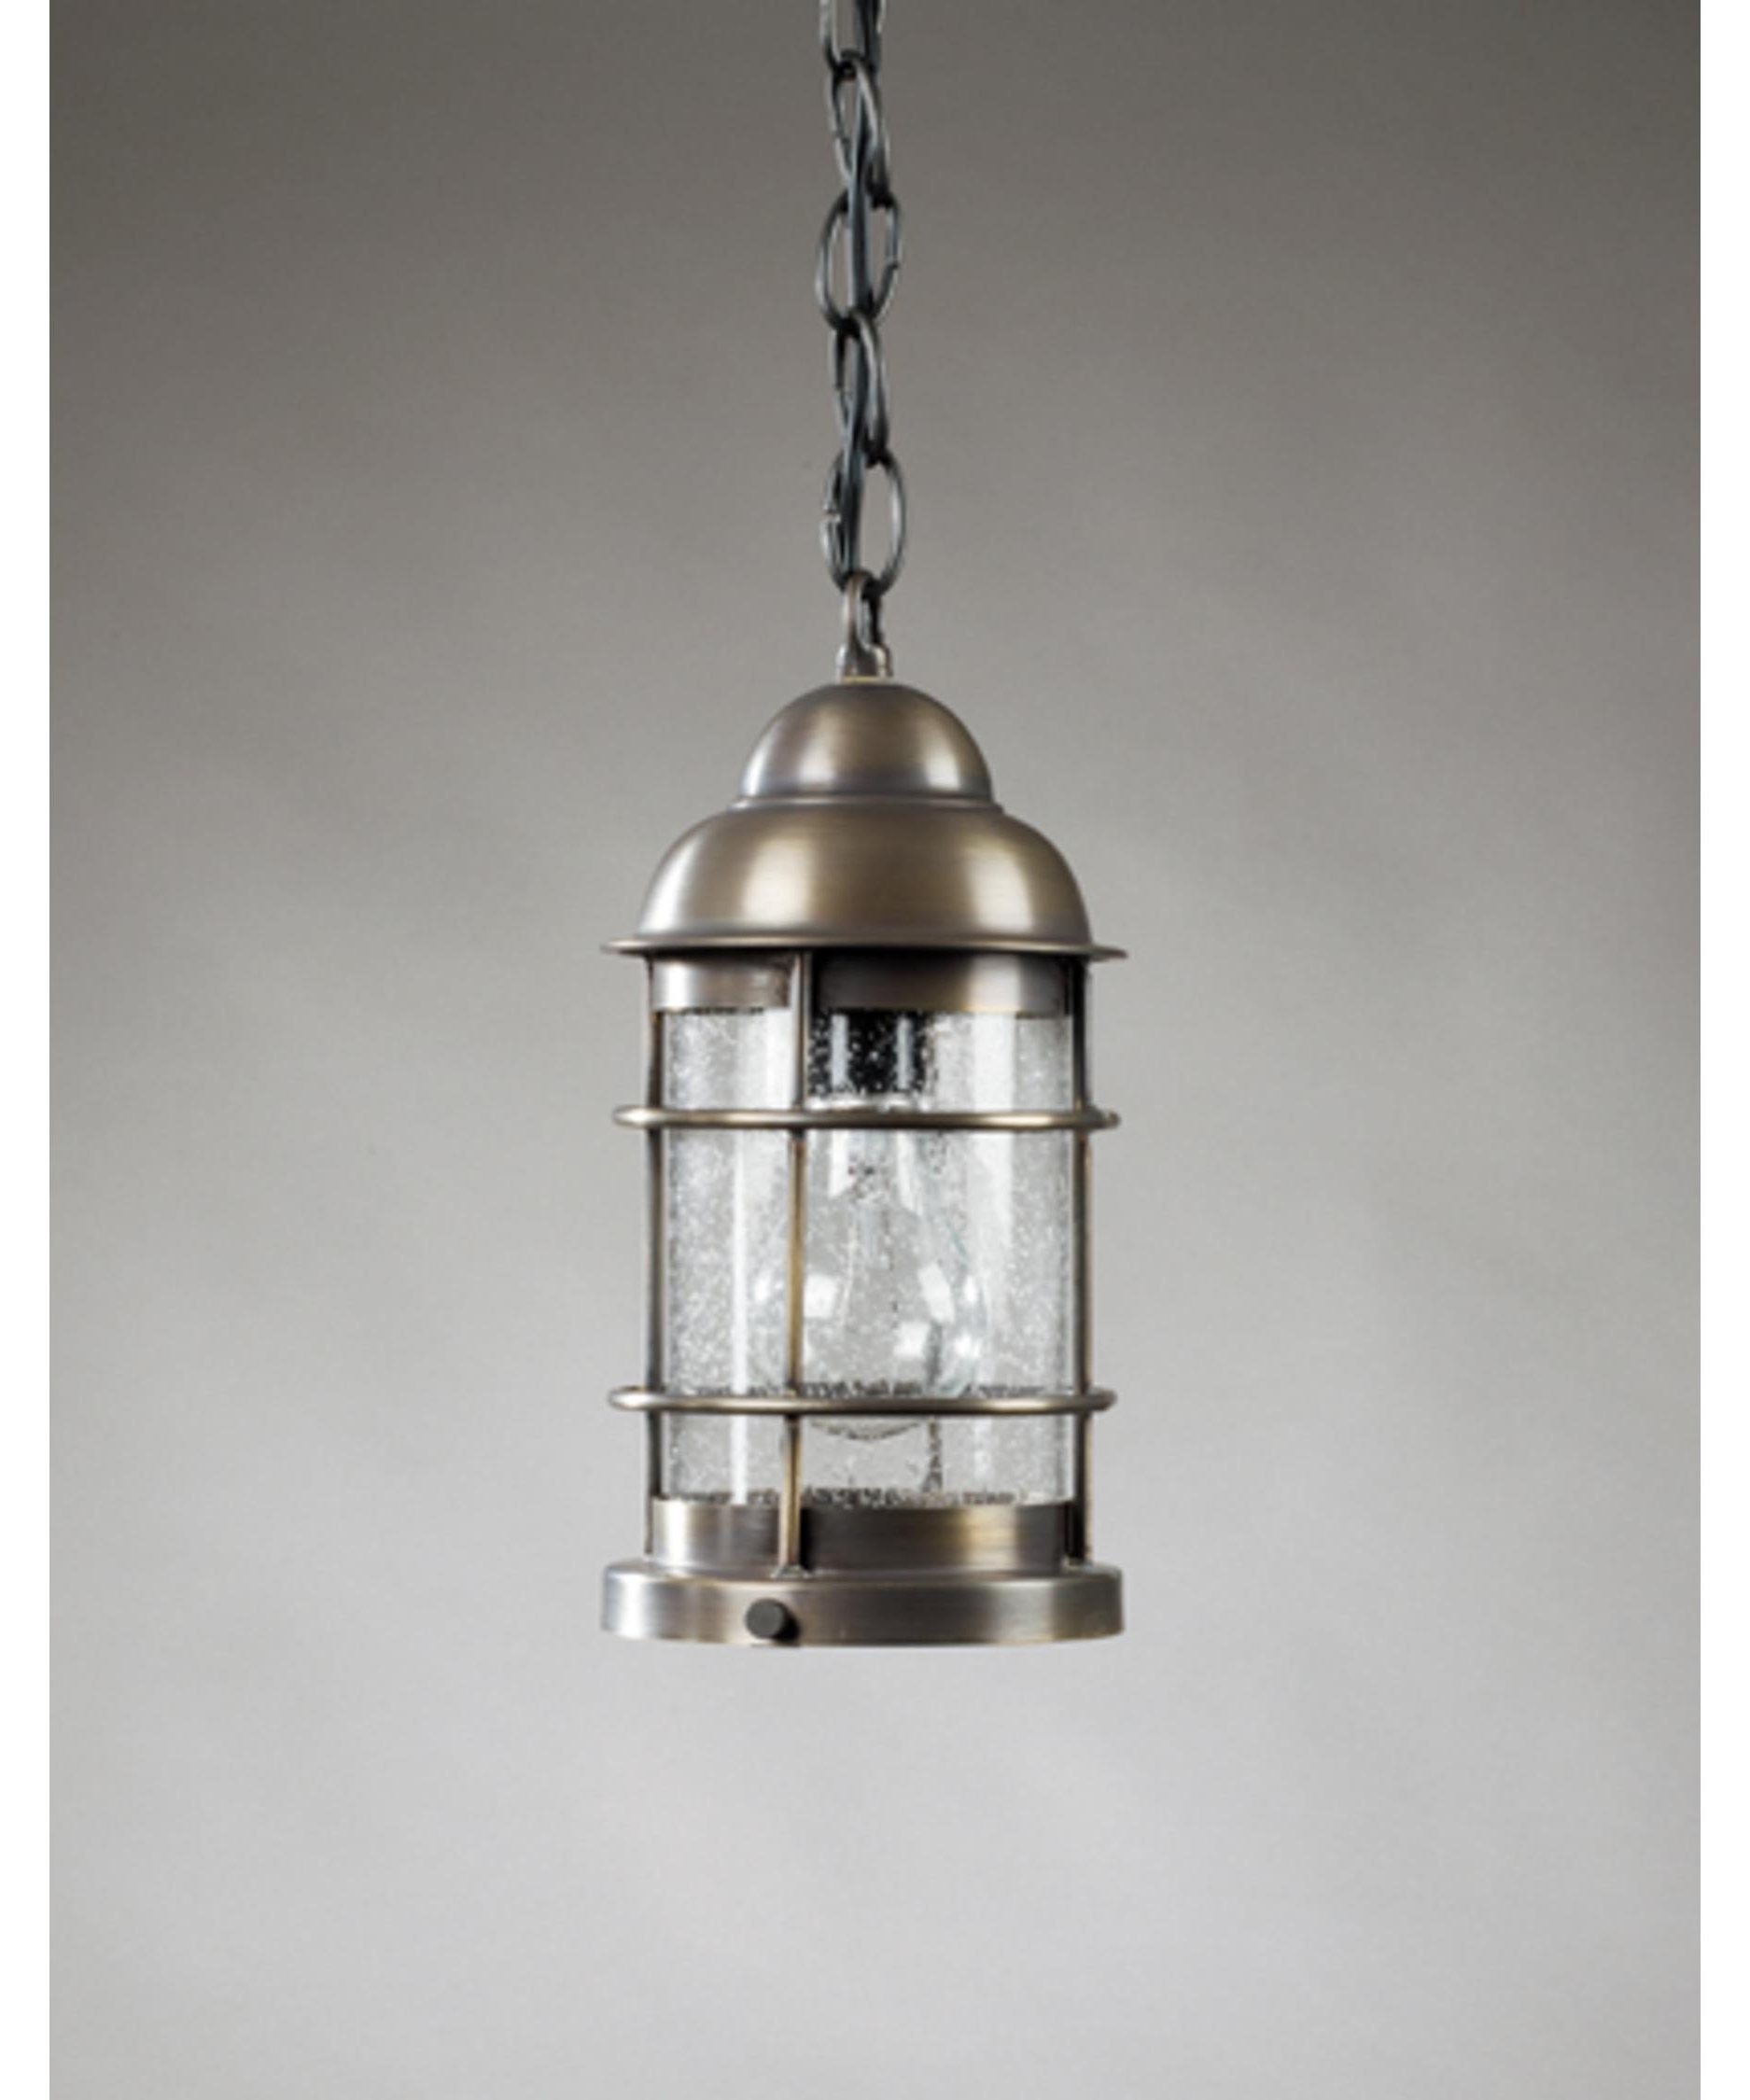 Best And Newest Pendant Lights: Glamorous Nautical Pendant Lights Nautical Ceiling With Outdoor Nautical Lanterns (View 2 of 20)